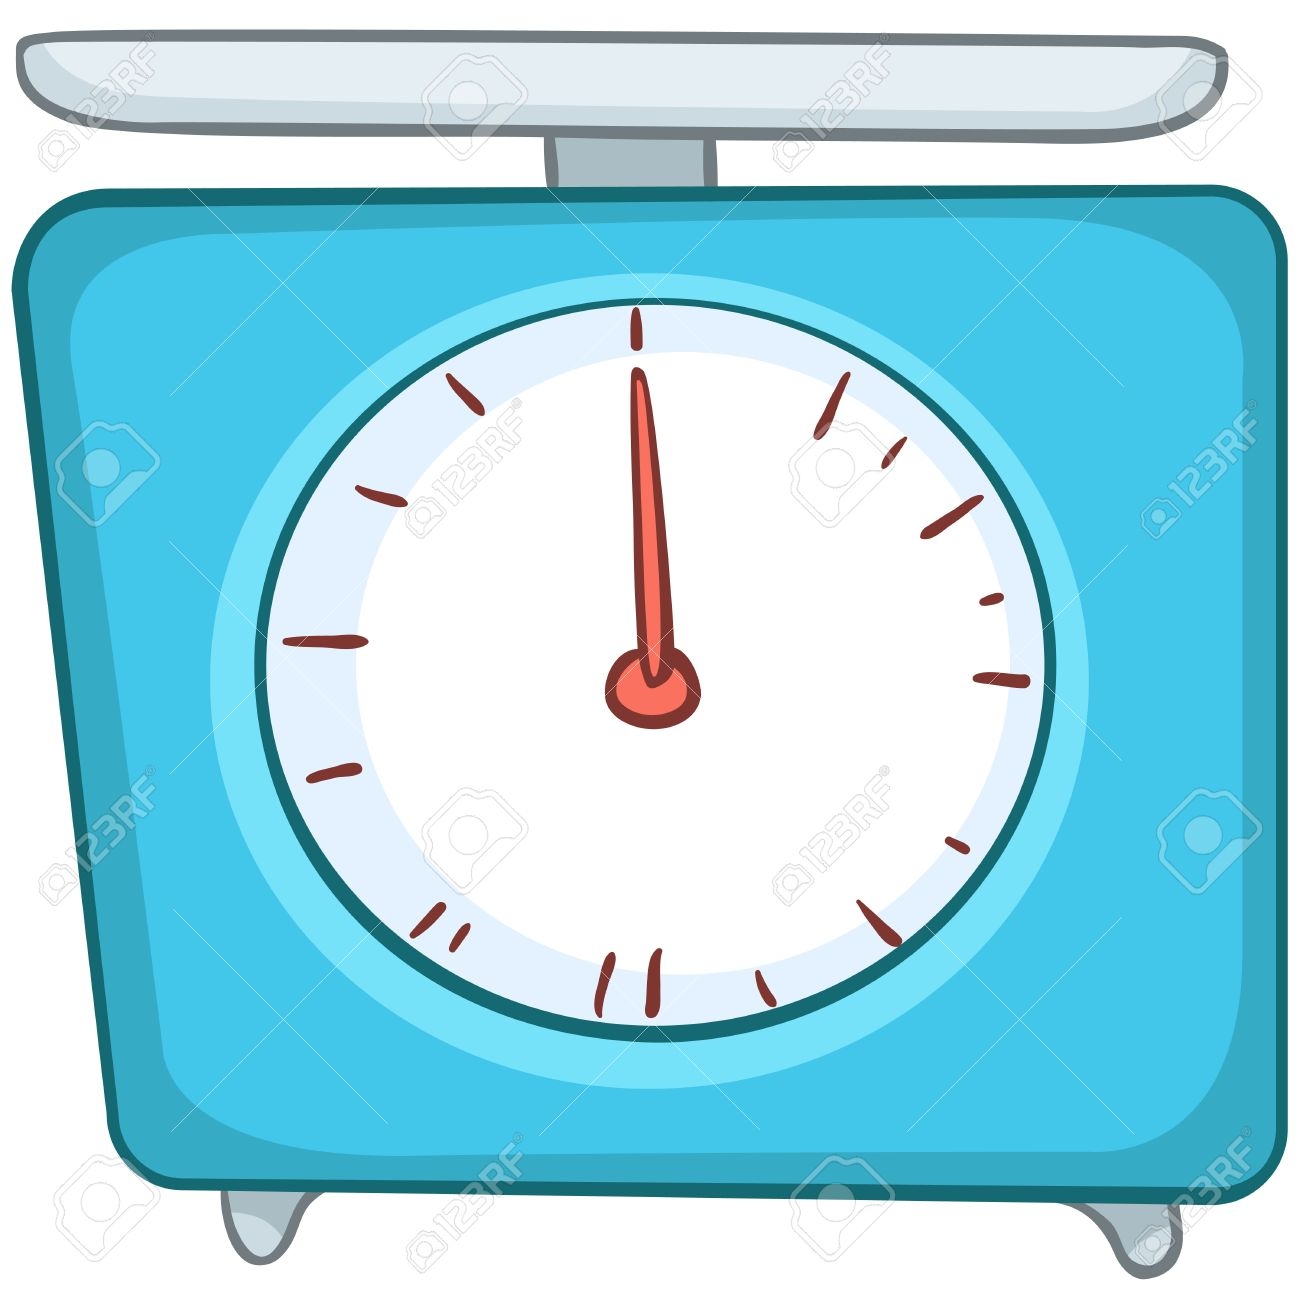 Cartoon Home Kitchen Scales Royalty Free Cliparts, Vectors, And.